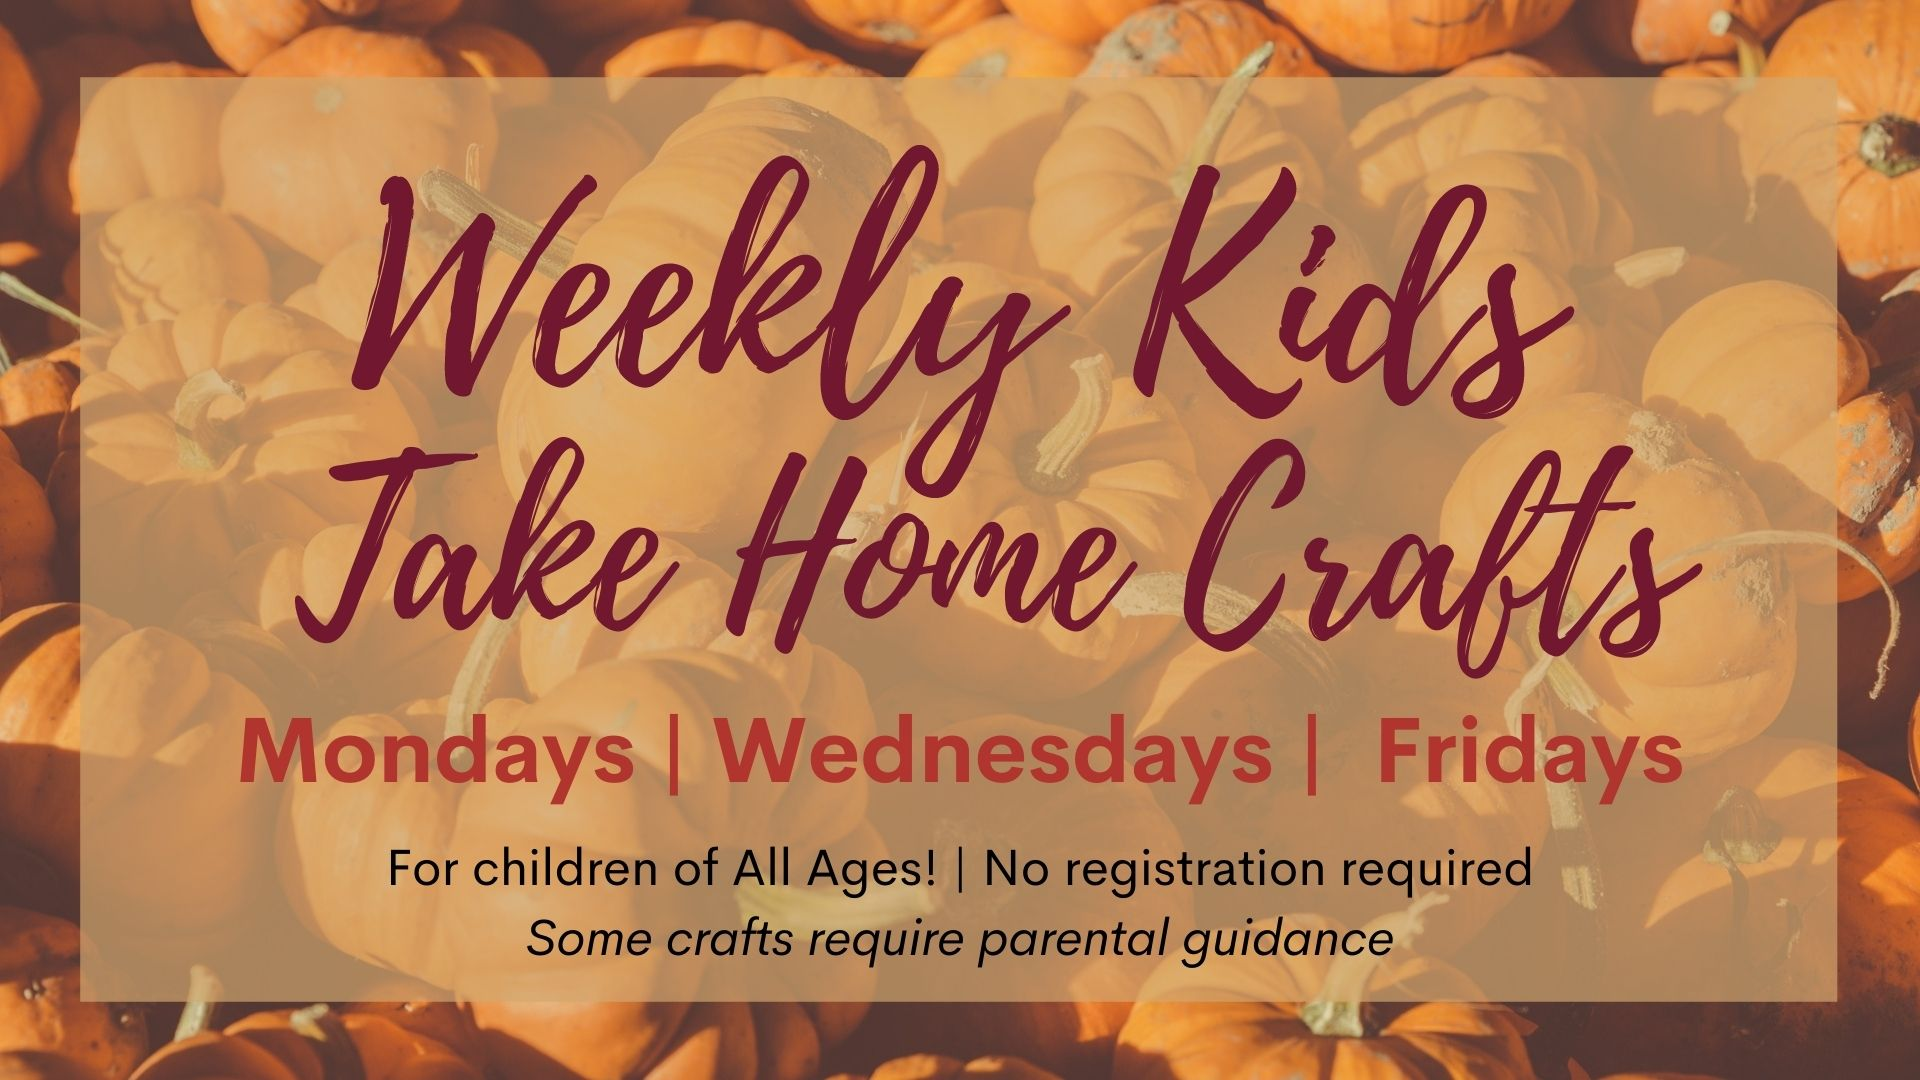 Weekly Kids Take Home Crafts